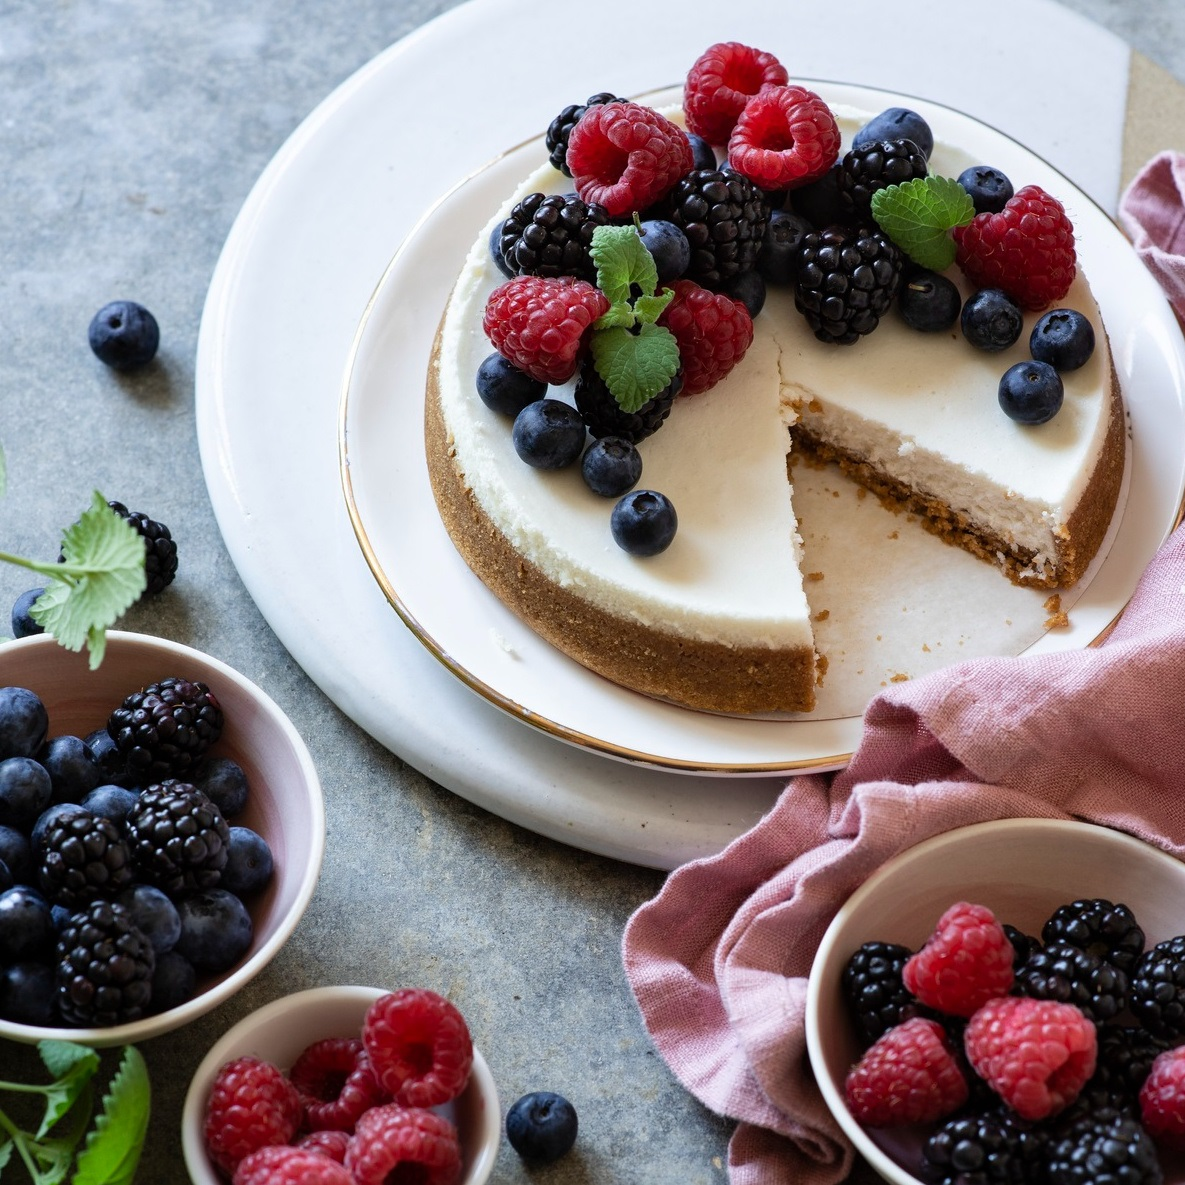 cheesecake topped with fresh berries